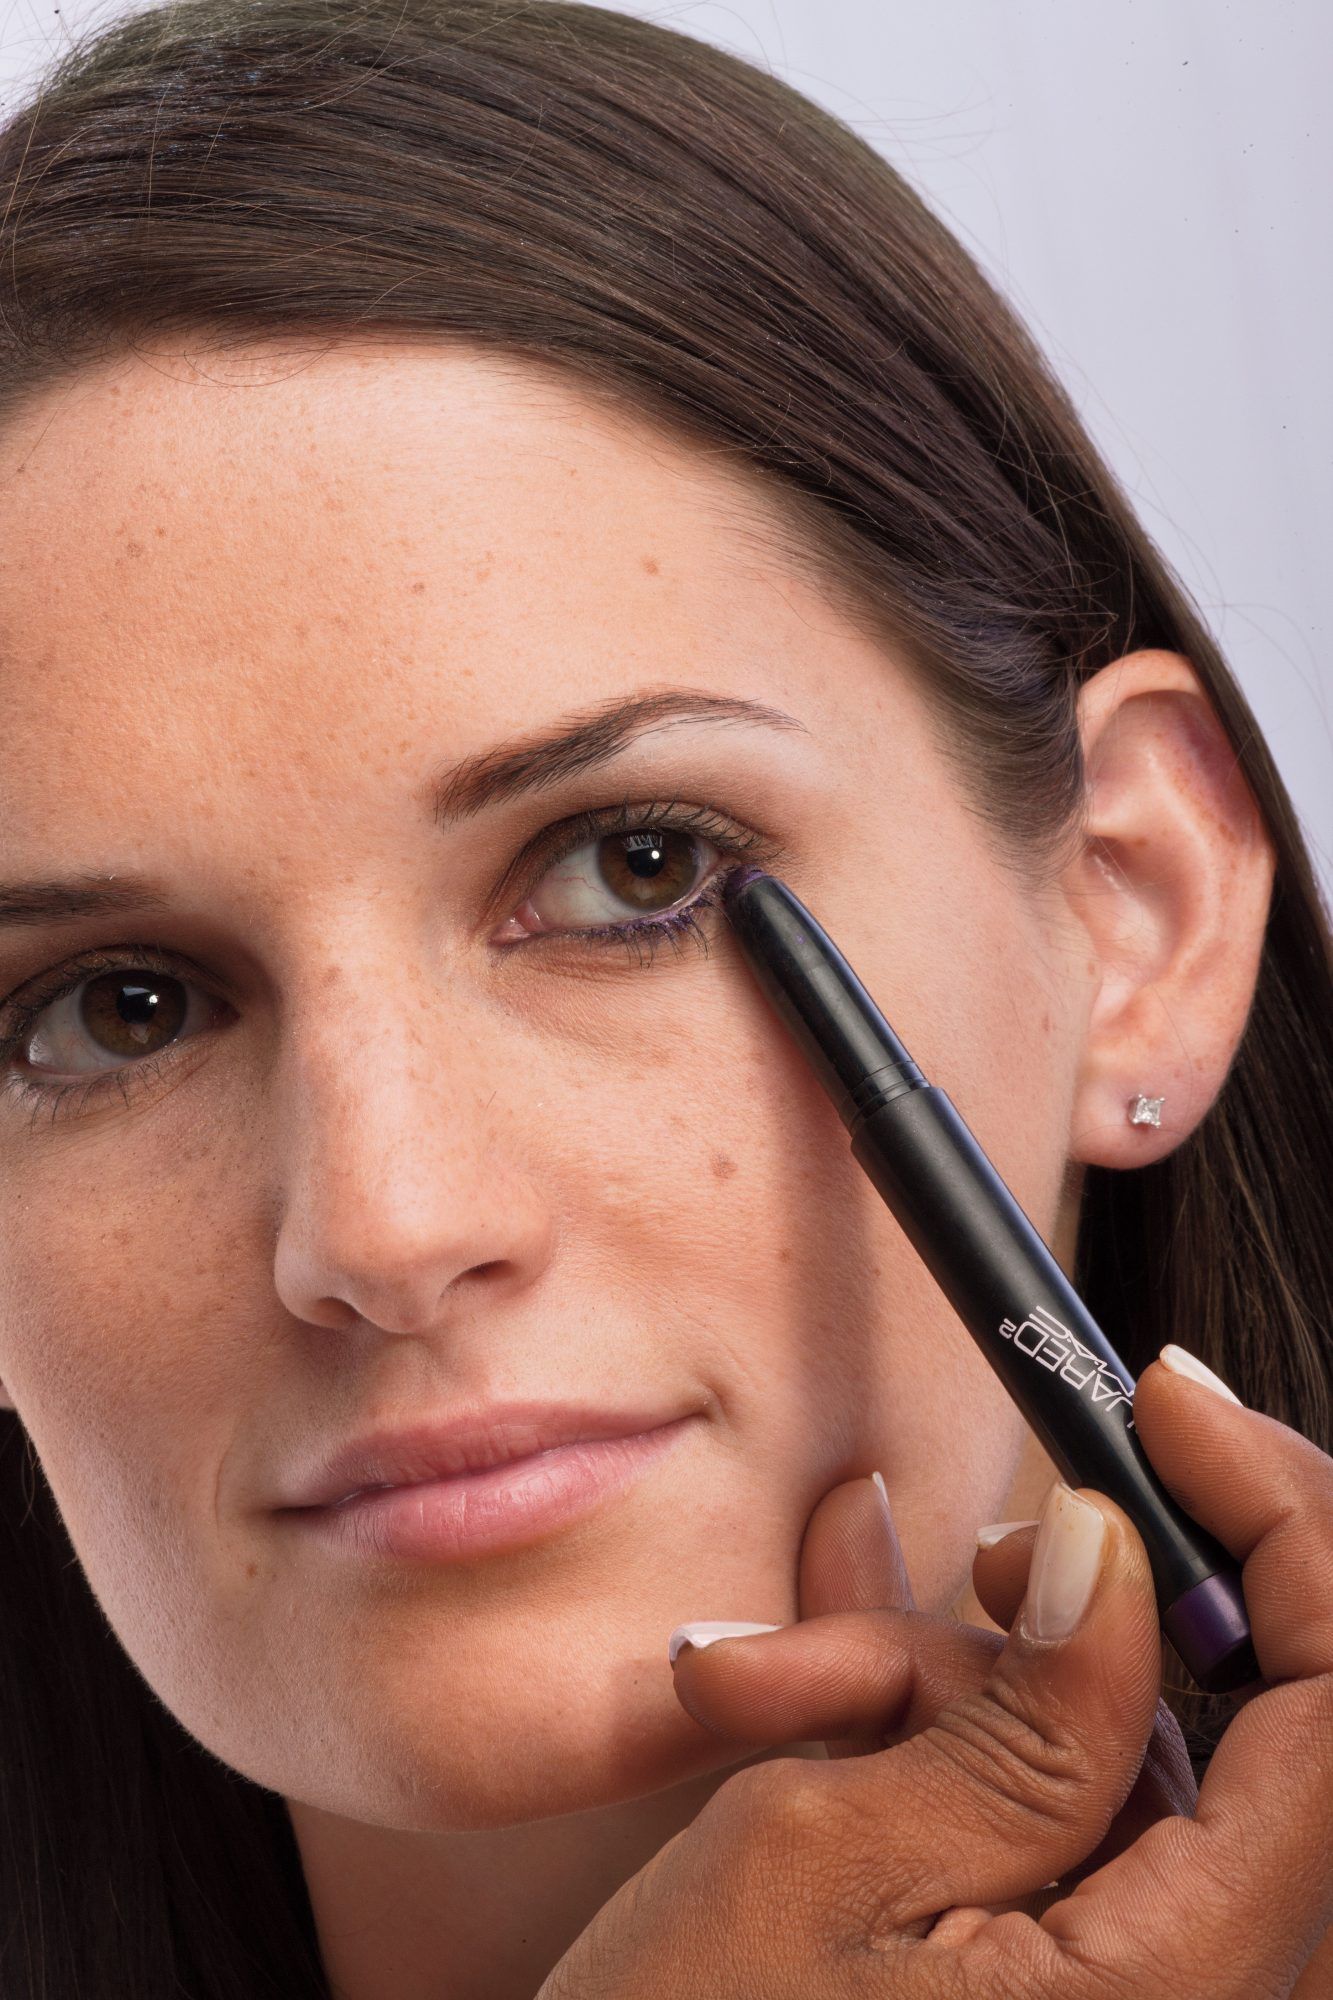 Smoky Eye Makeup Tips: Step 3